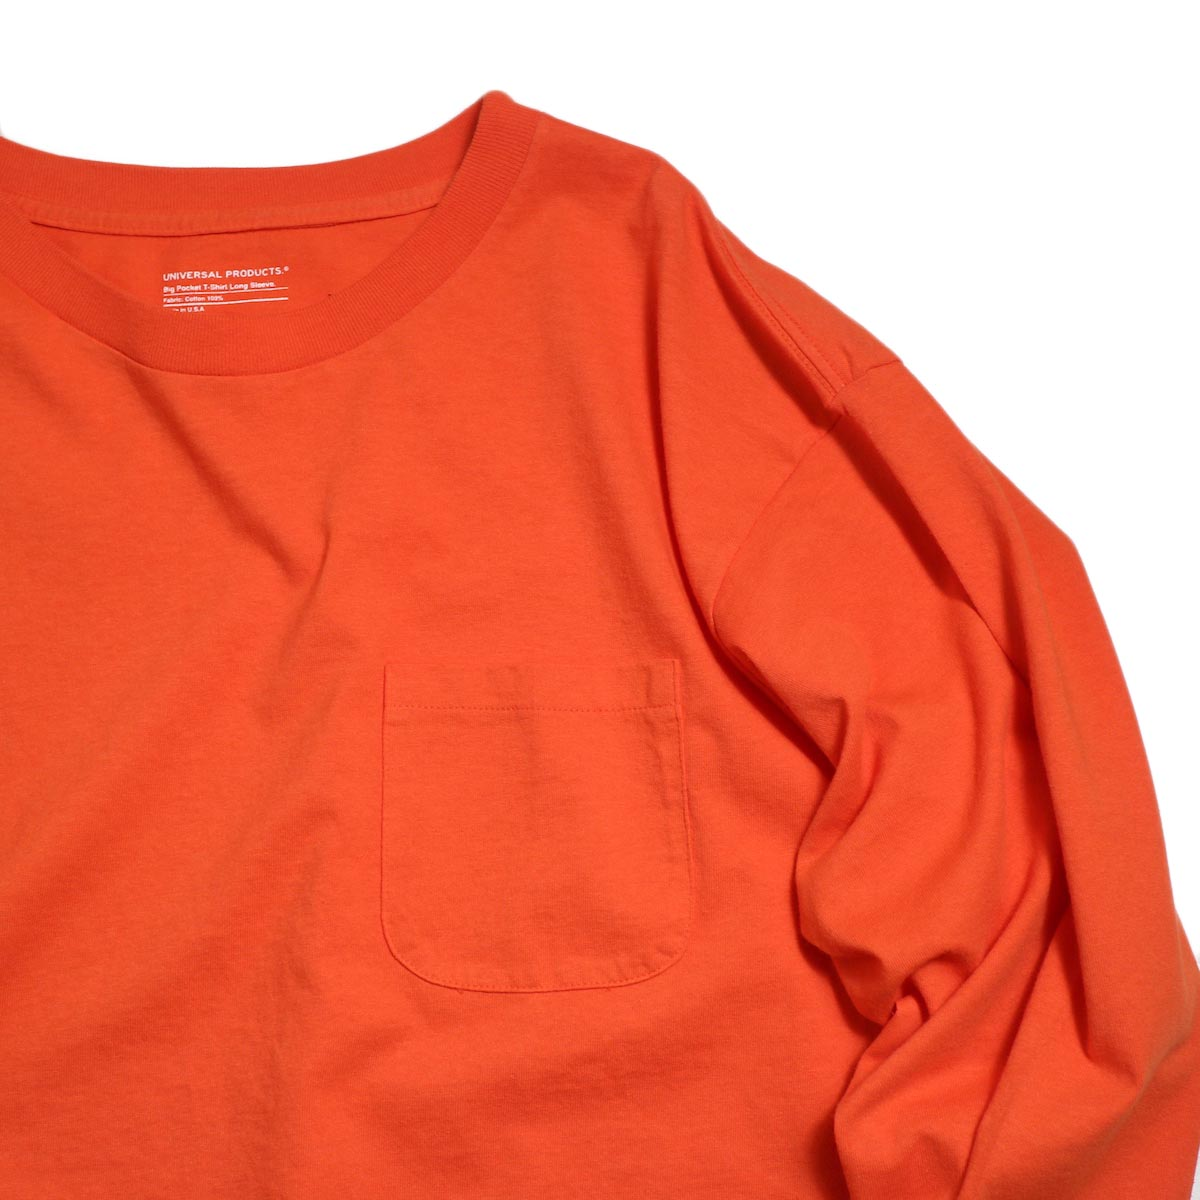 UNIVERSAL PRODUCTS / Heavy Weight L/S T-Shirt -Orange ポケット